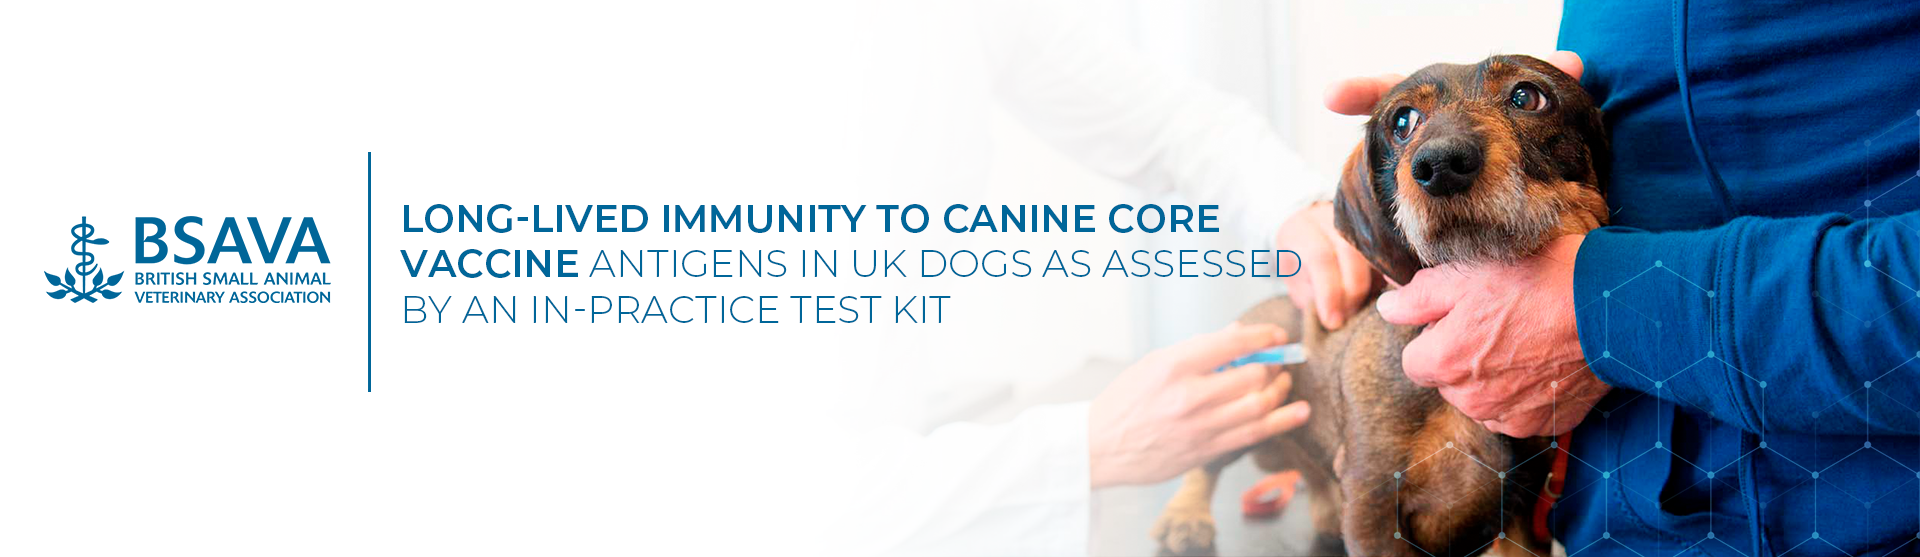 Long-lived immunity to canine core vaccine antigens in UK dogs